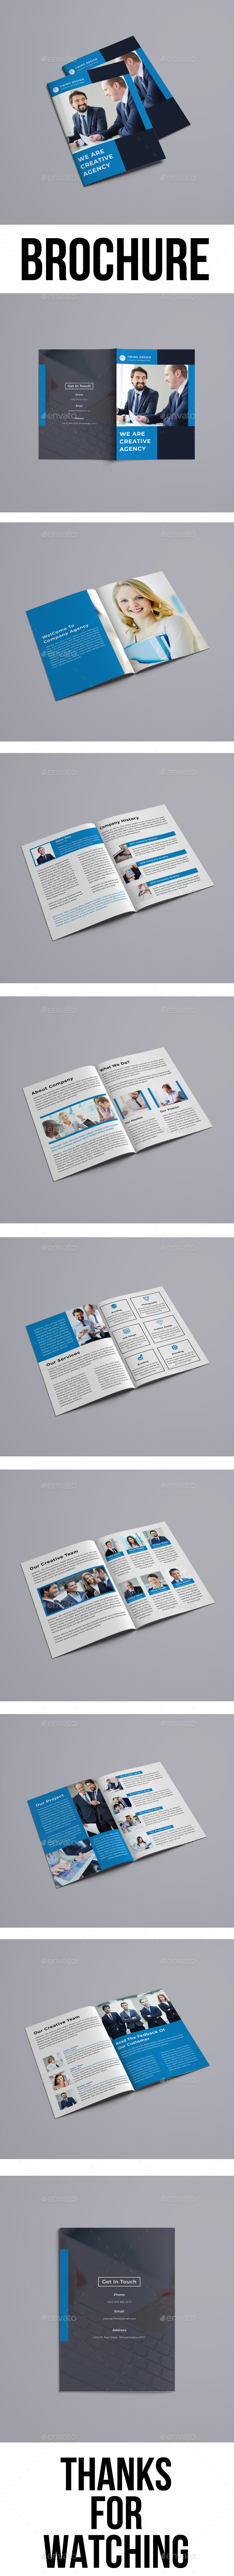 GraphicRiver Brochure 21155223